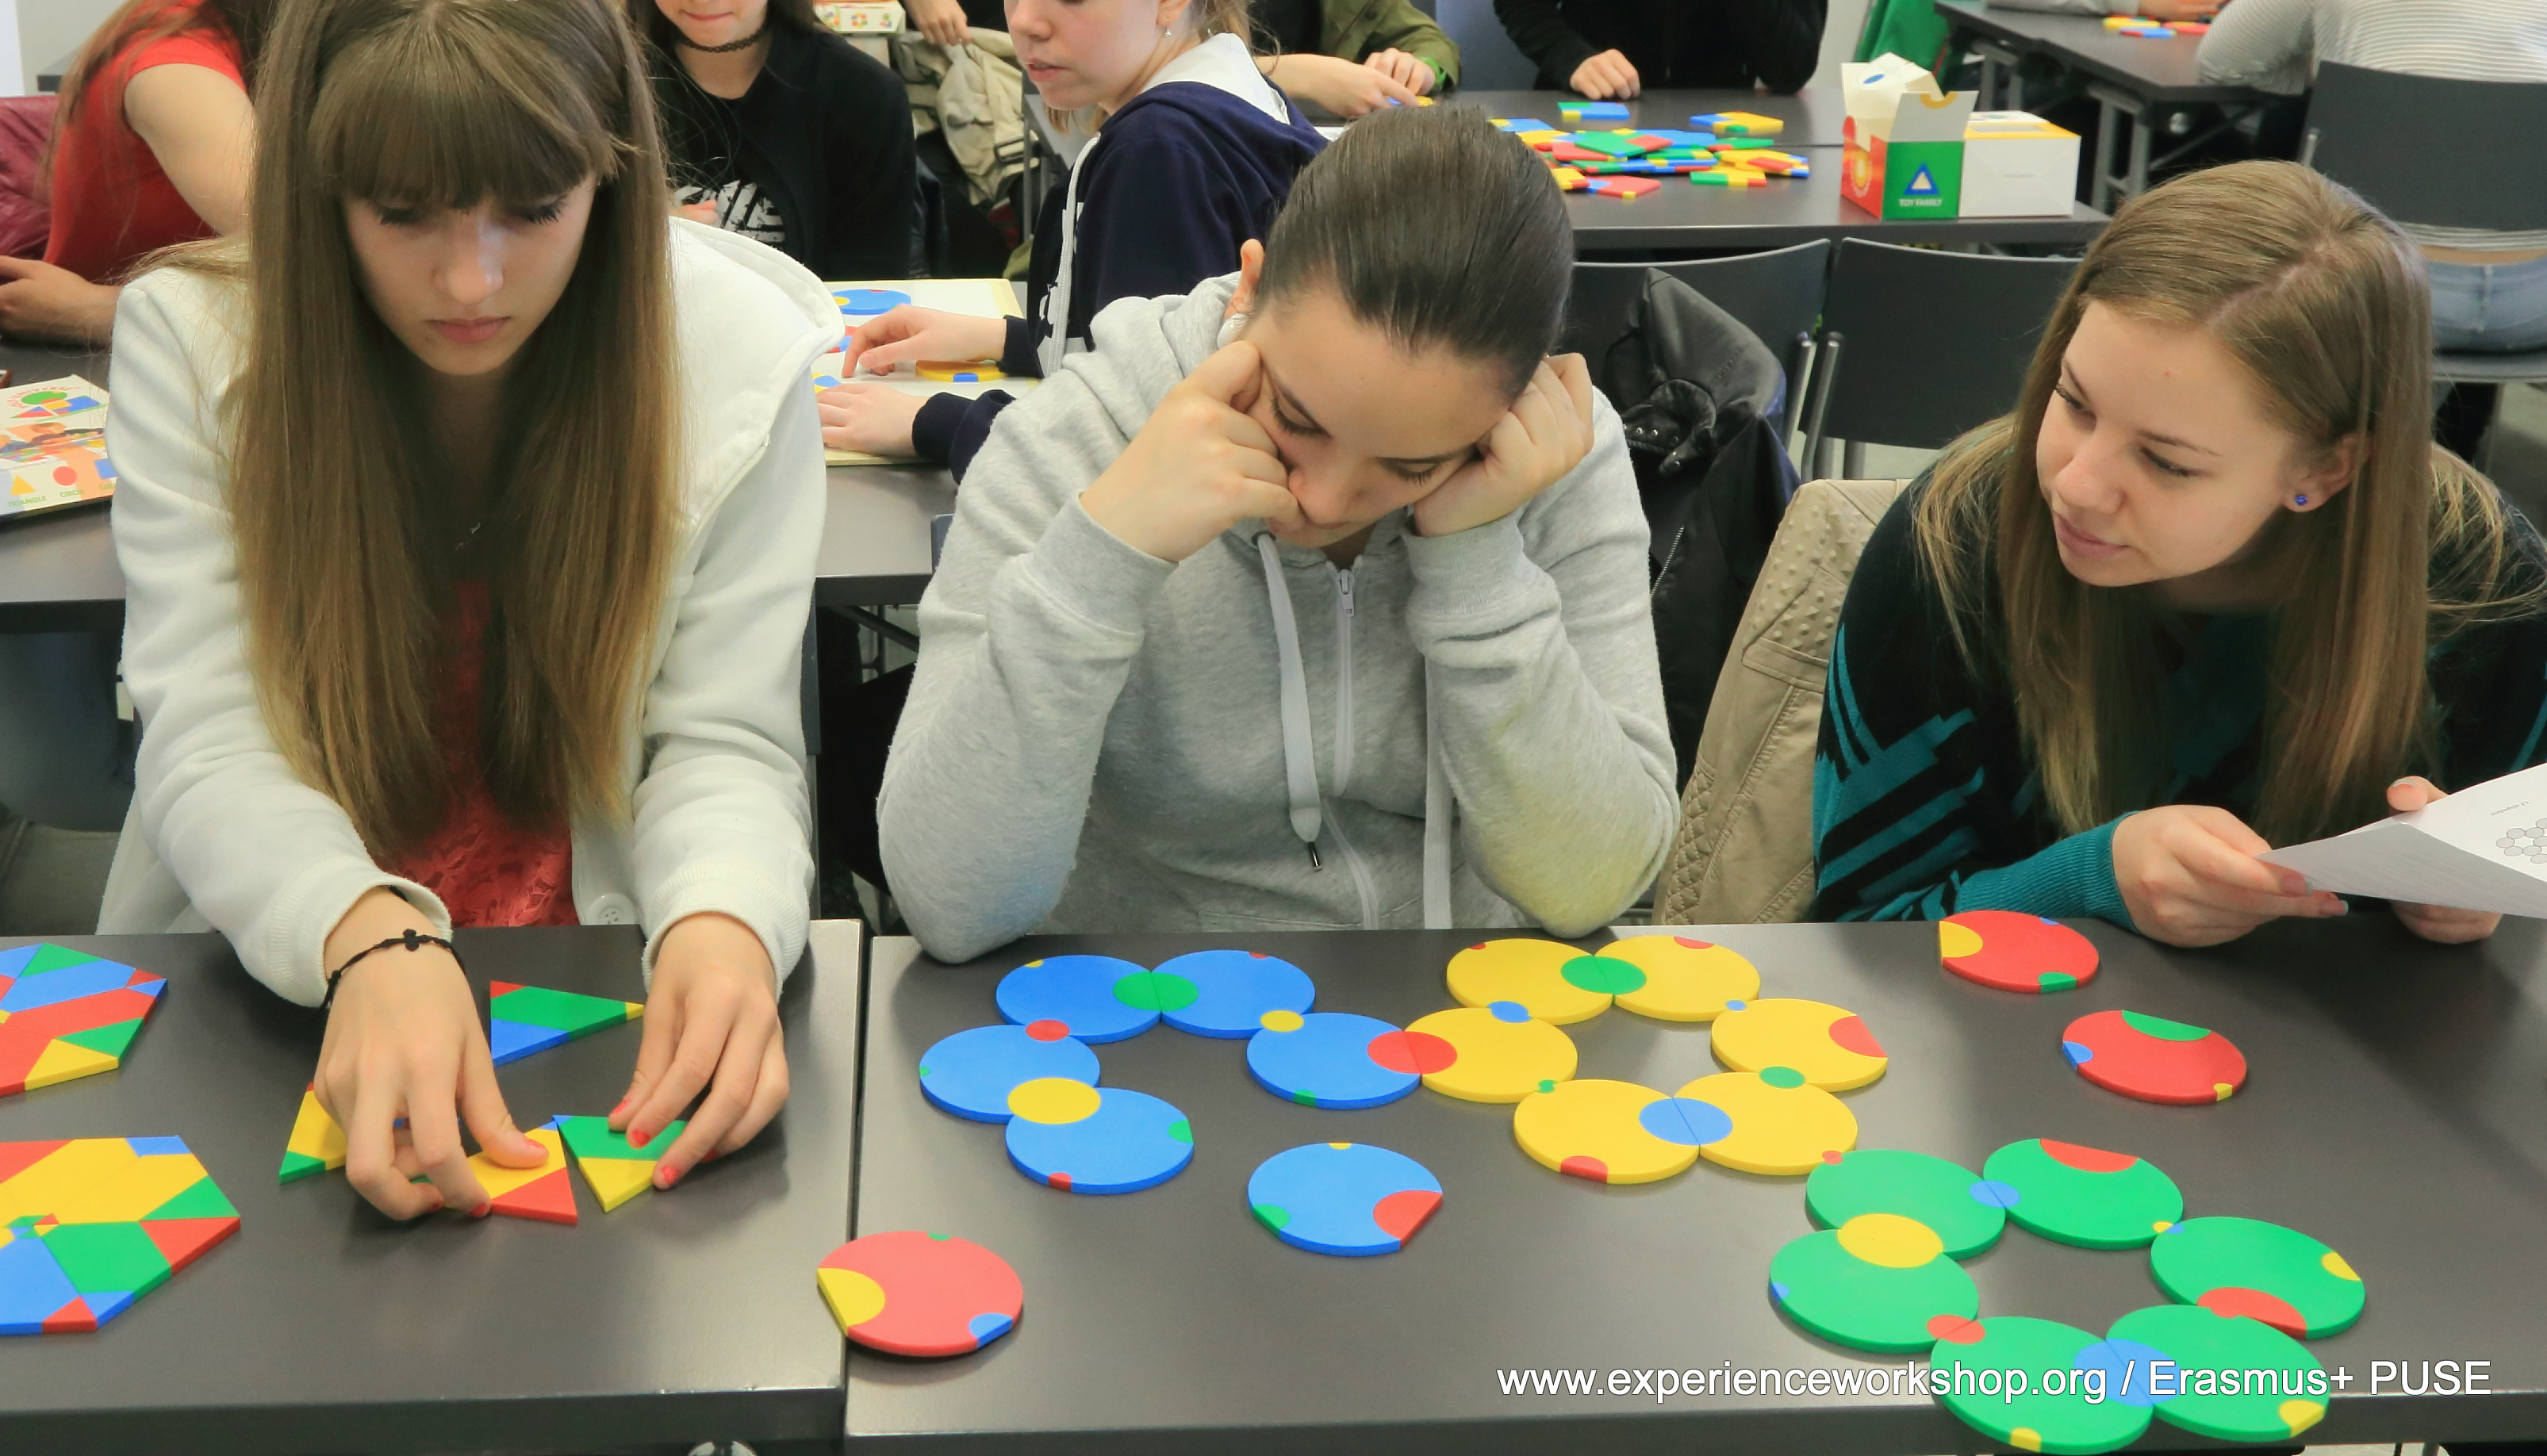 Poly-Universe in School Education Erasmus+ dissemination event at Finland's top STEM Education Meet-up in the University of Jyväskylä